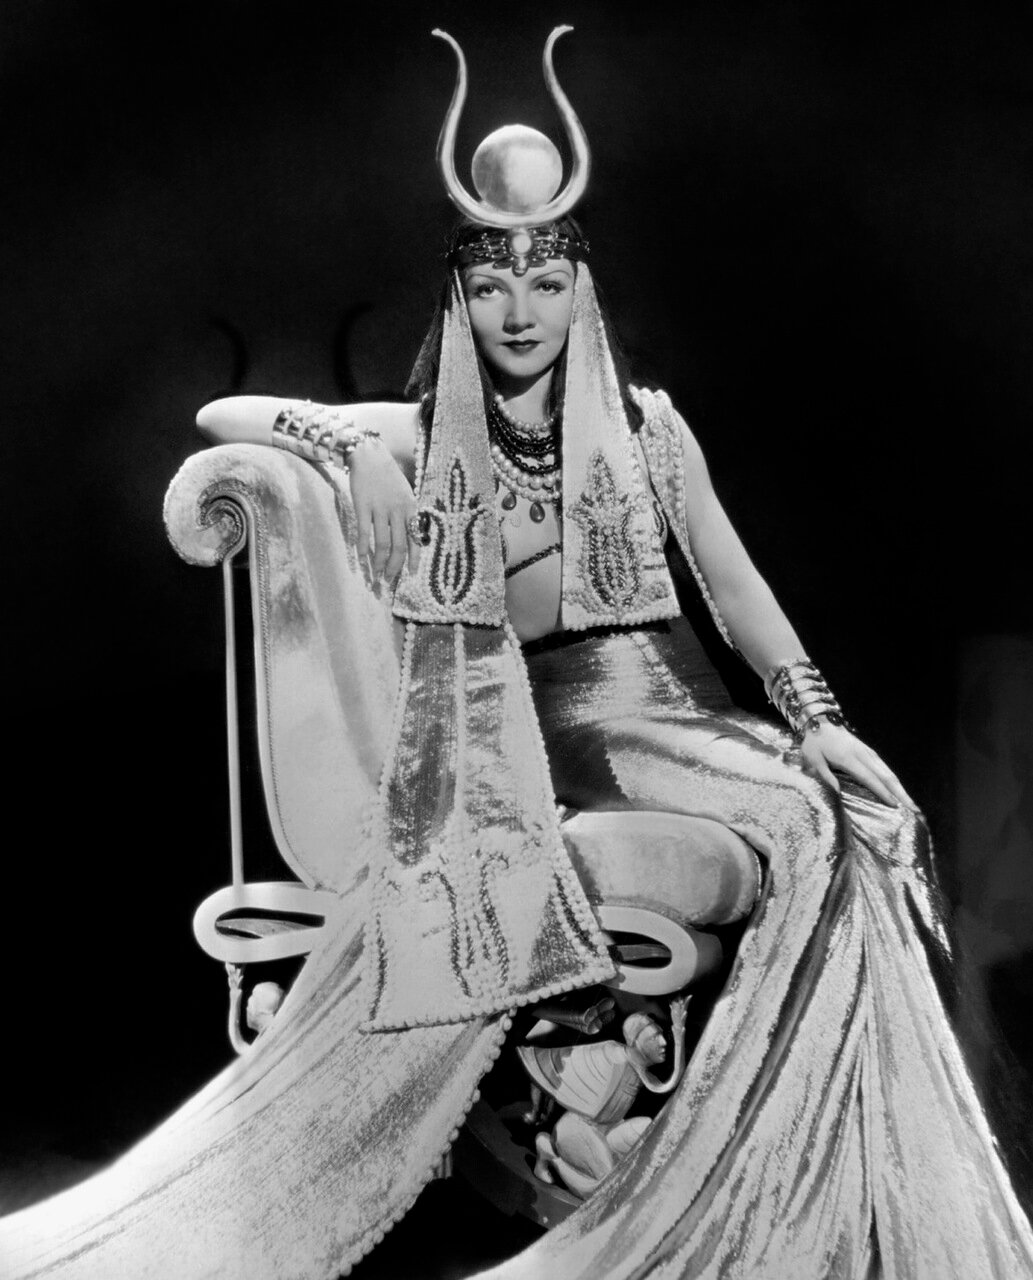 1934: Claudette Colbert (Lily Chauchoin, 1903 - 1996), as she appears in the title role of Cecil B DeMille's 'Cleopatra'. Costume designed by Travis Banton.